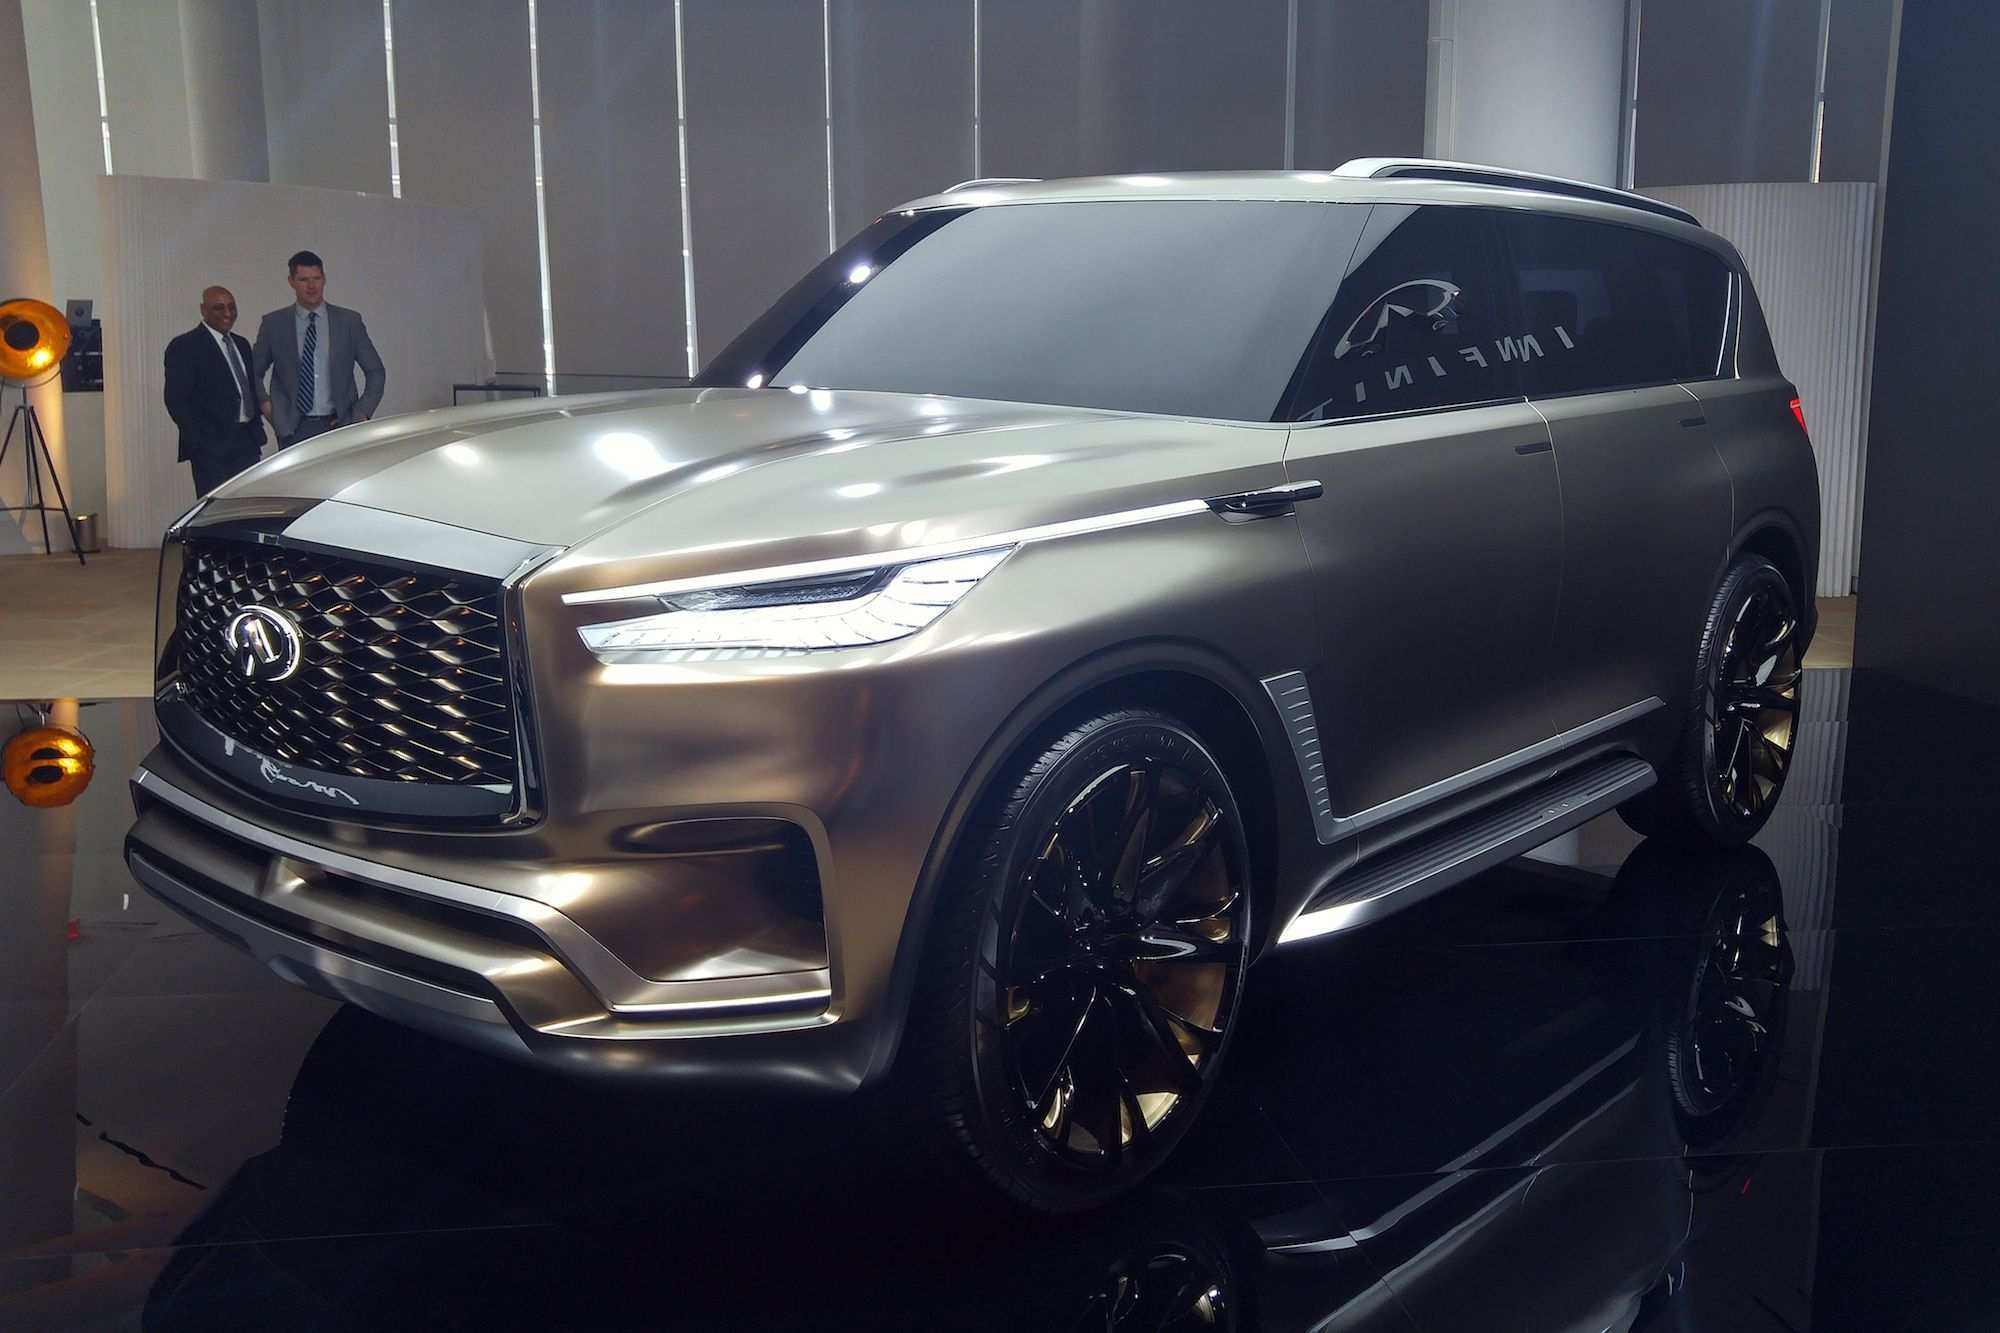 38 Best Review 2020 Infiniti Qx80 Msrp Performance and New Engine with 2020 Infiniti Qx80 Msrp